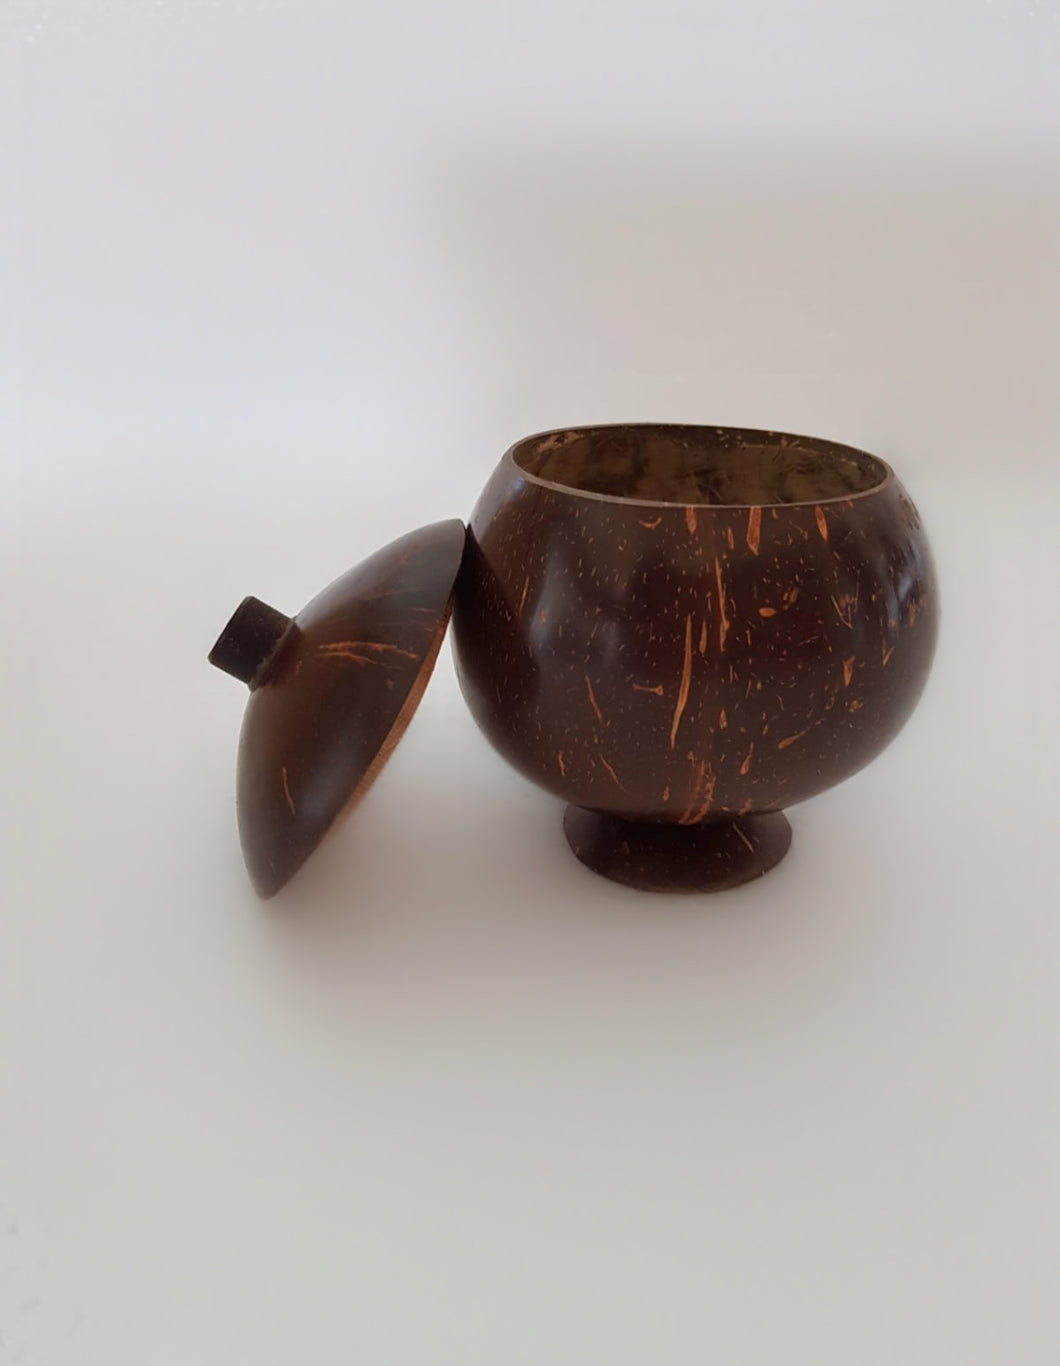 A hand polished coconut bowl with a lid.